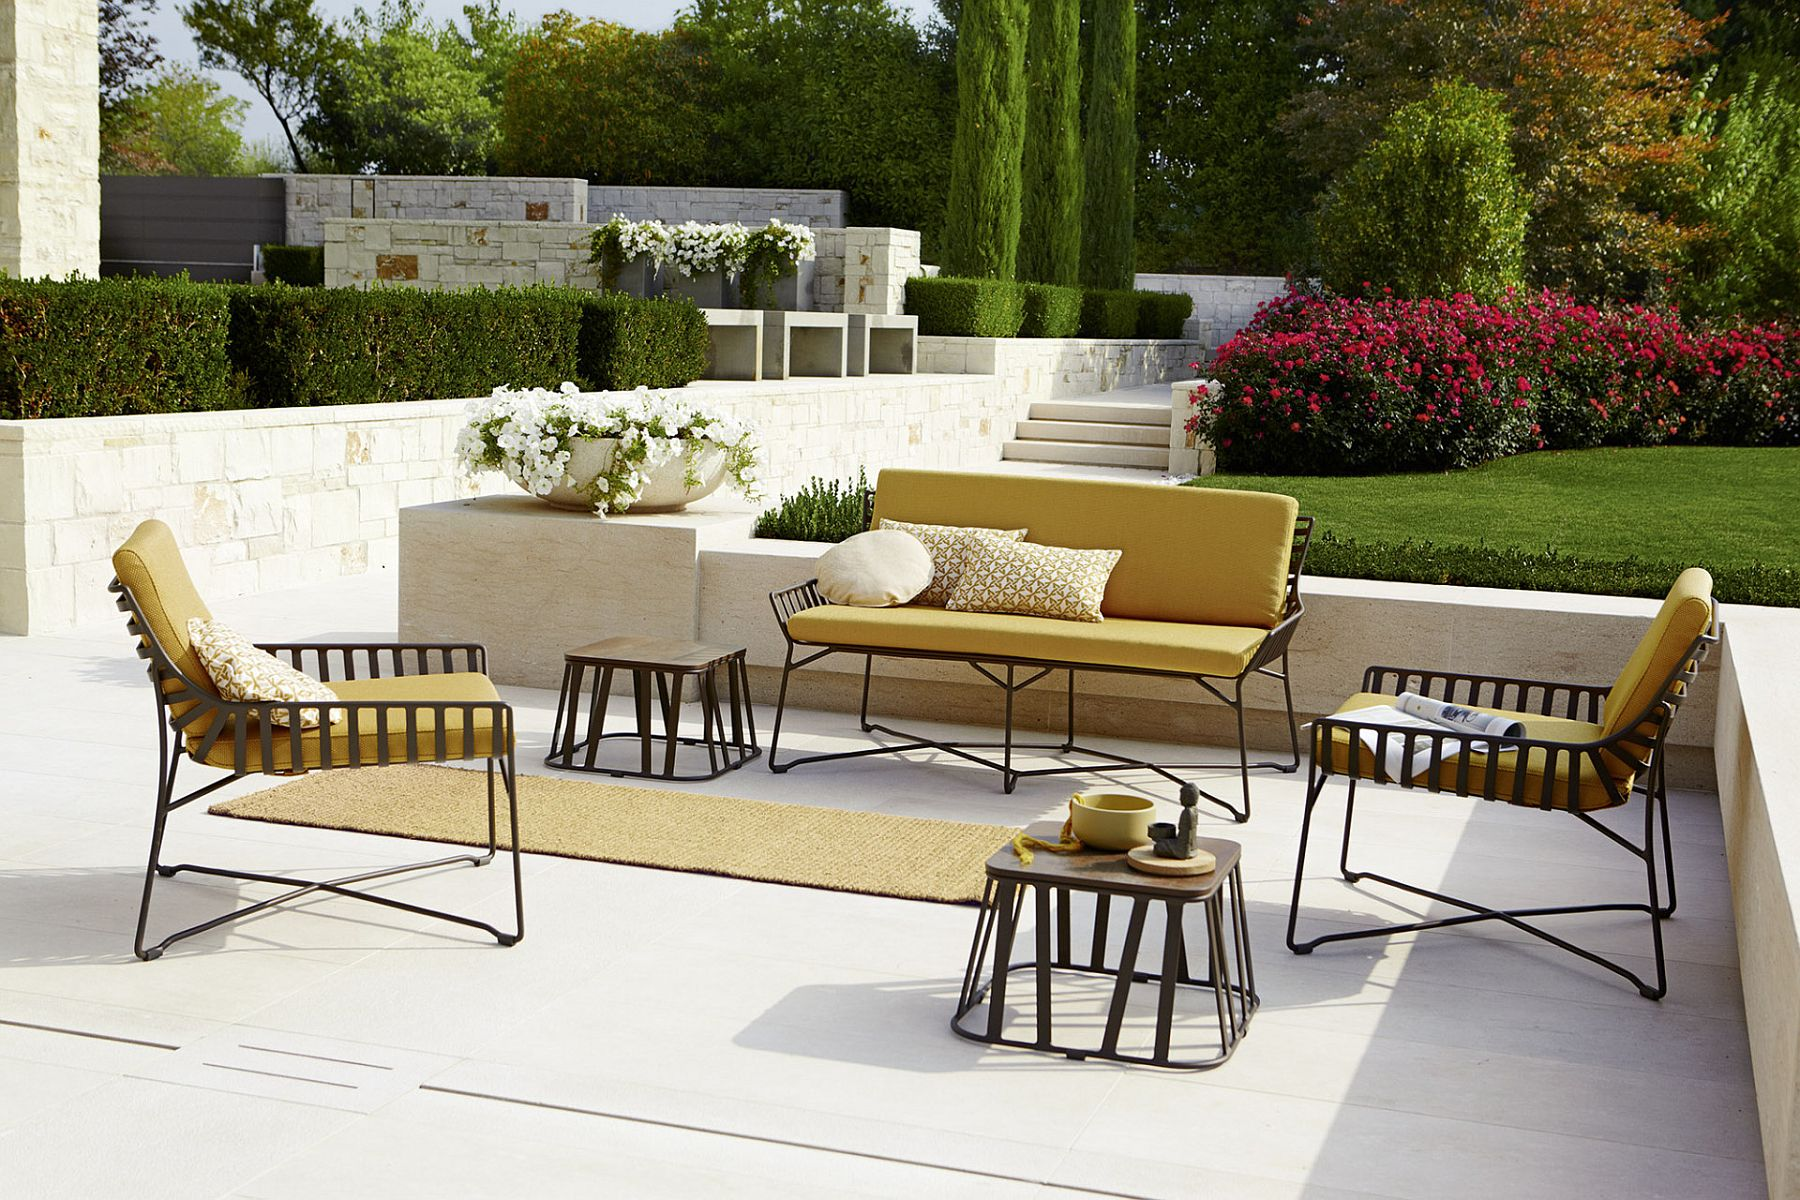 Colorful-cushions-bring-fashionable-allure-to-the-outdoor-decor-collection